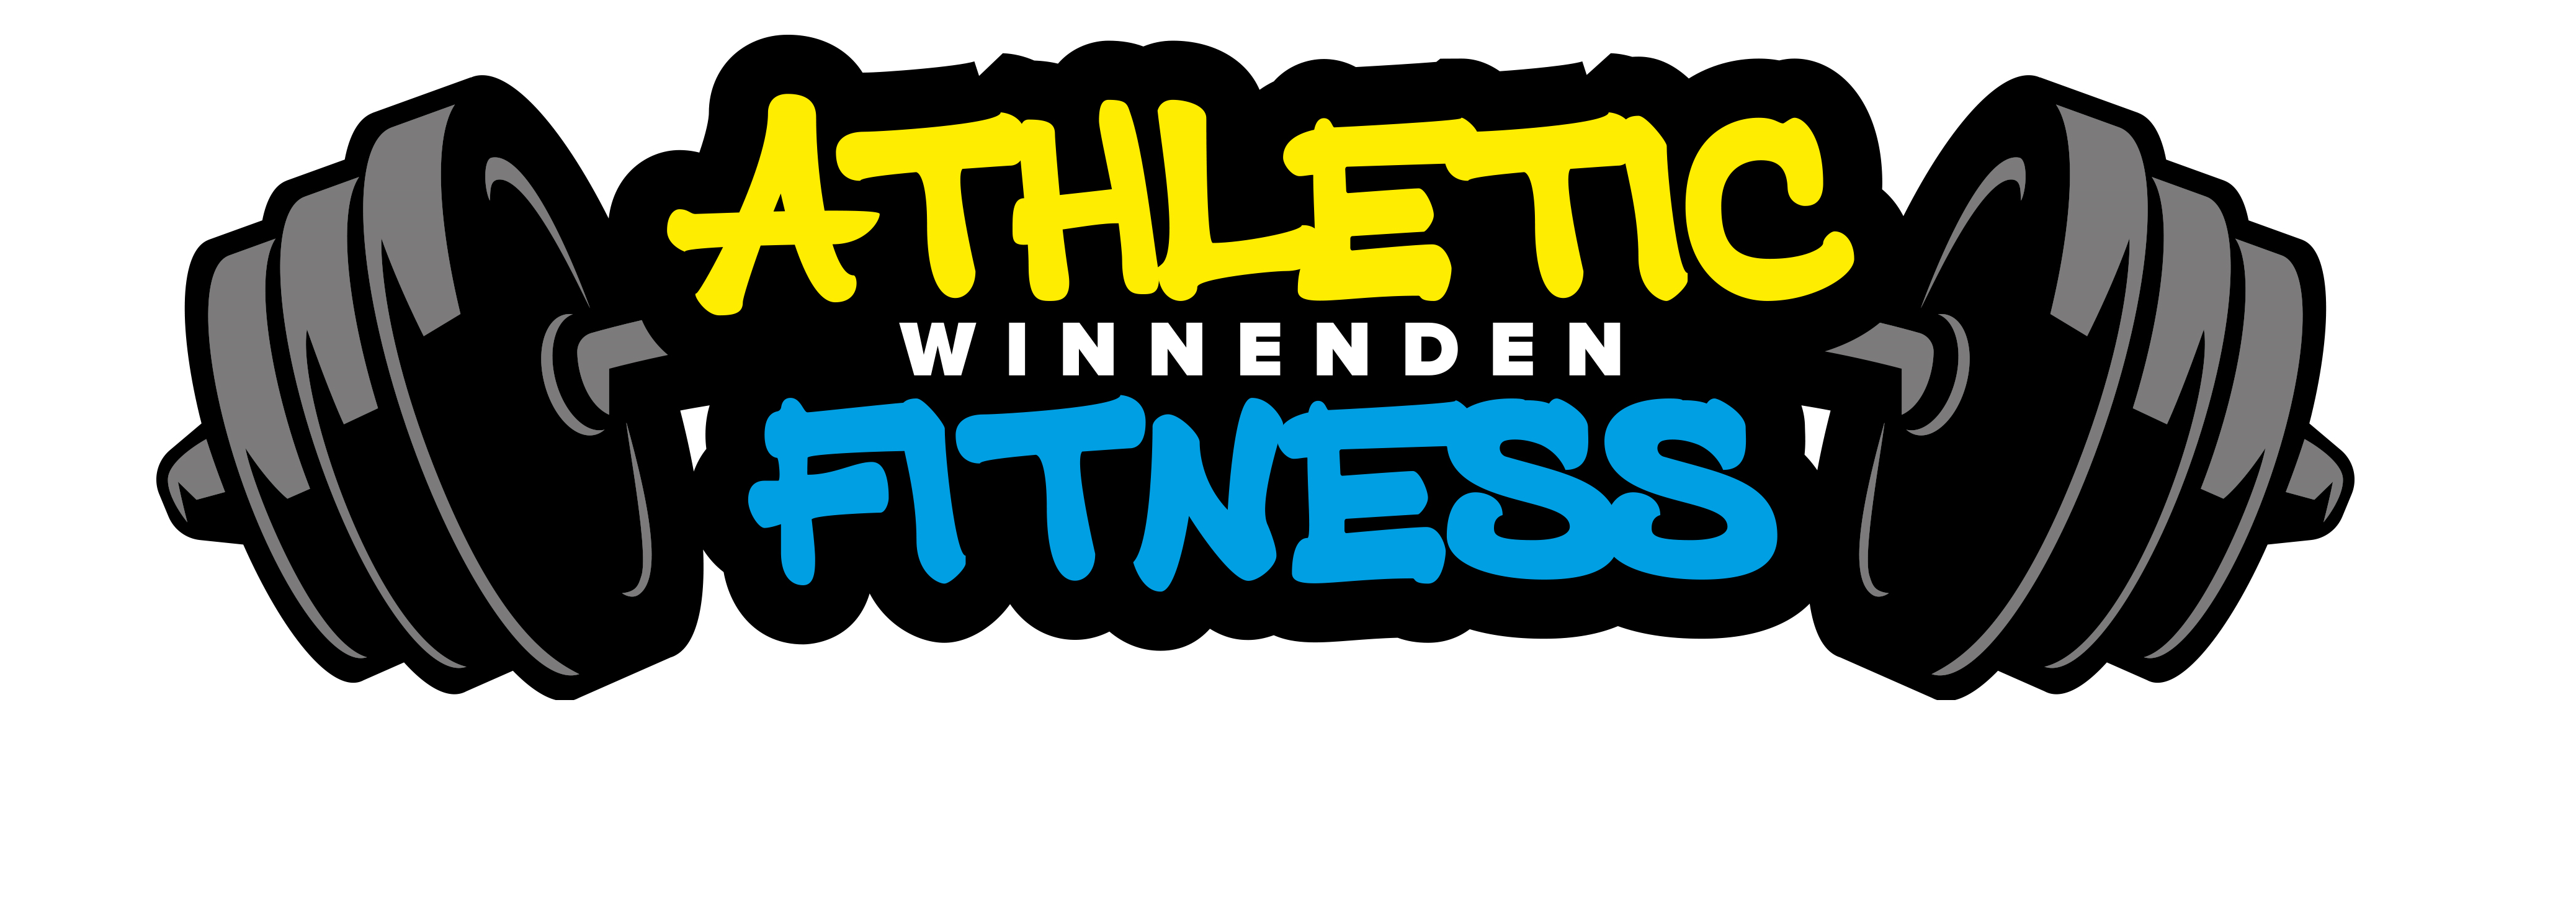 AthleticFitness Winnenden